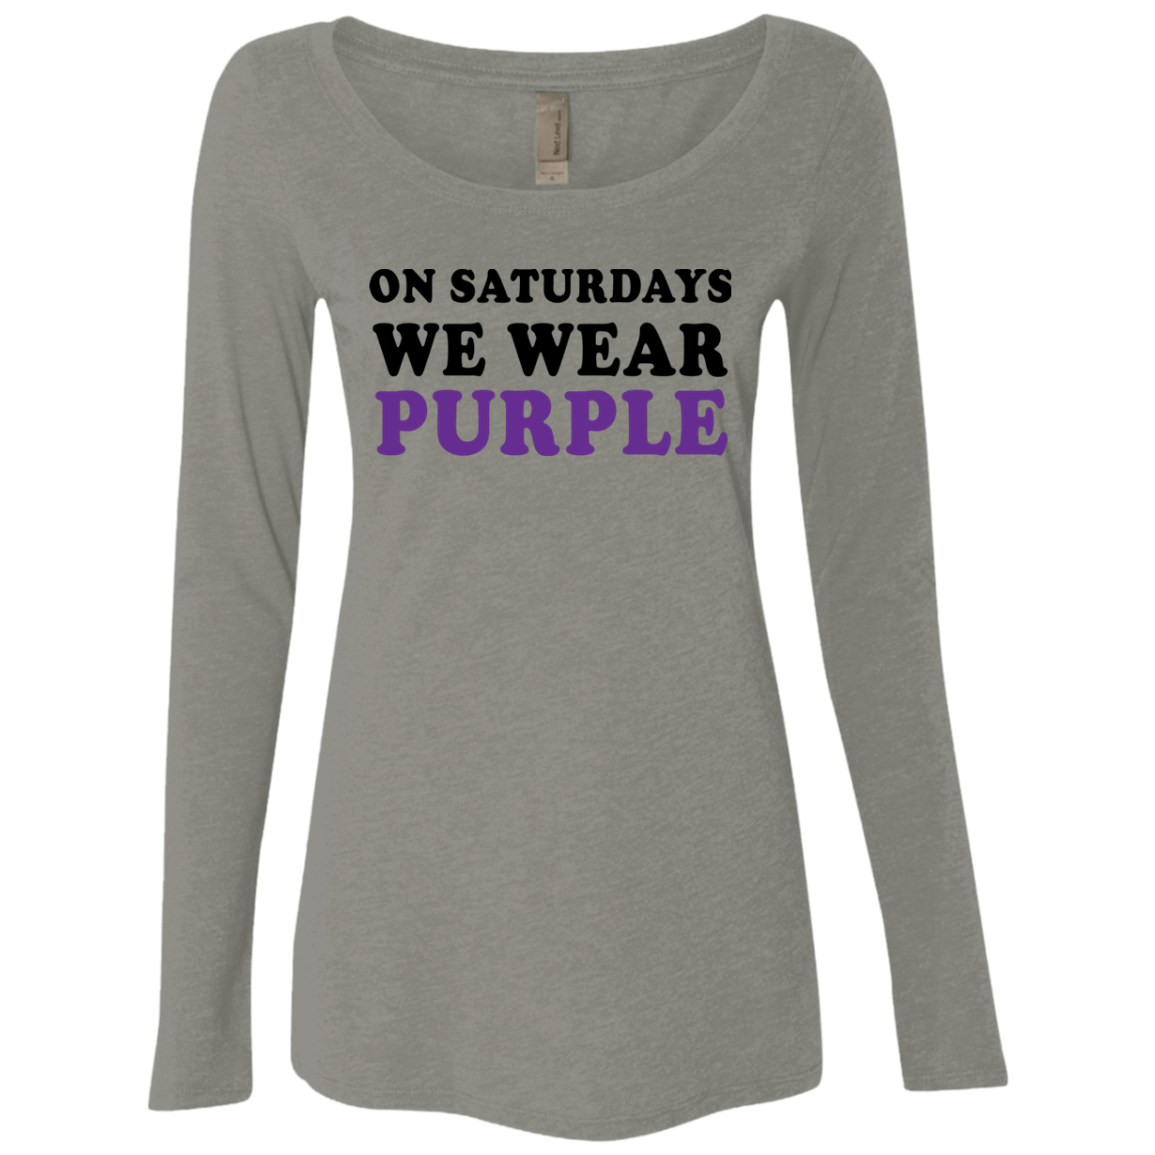 On Saturdays We Wear Purple Women's Long Sleeve Tee